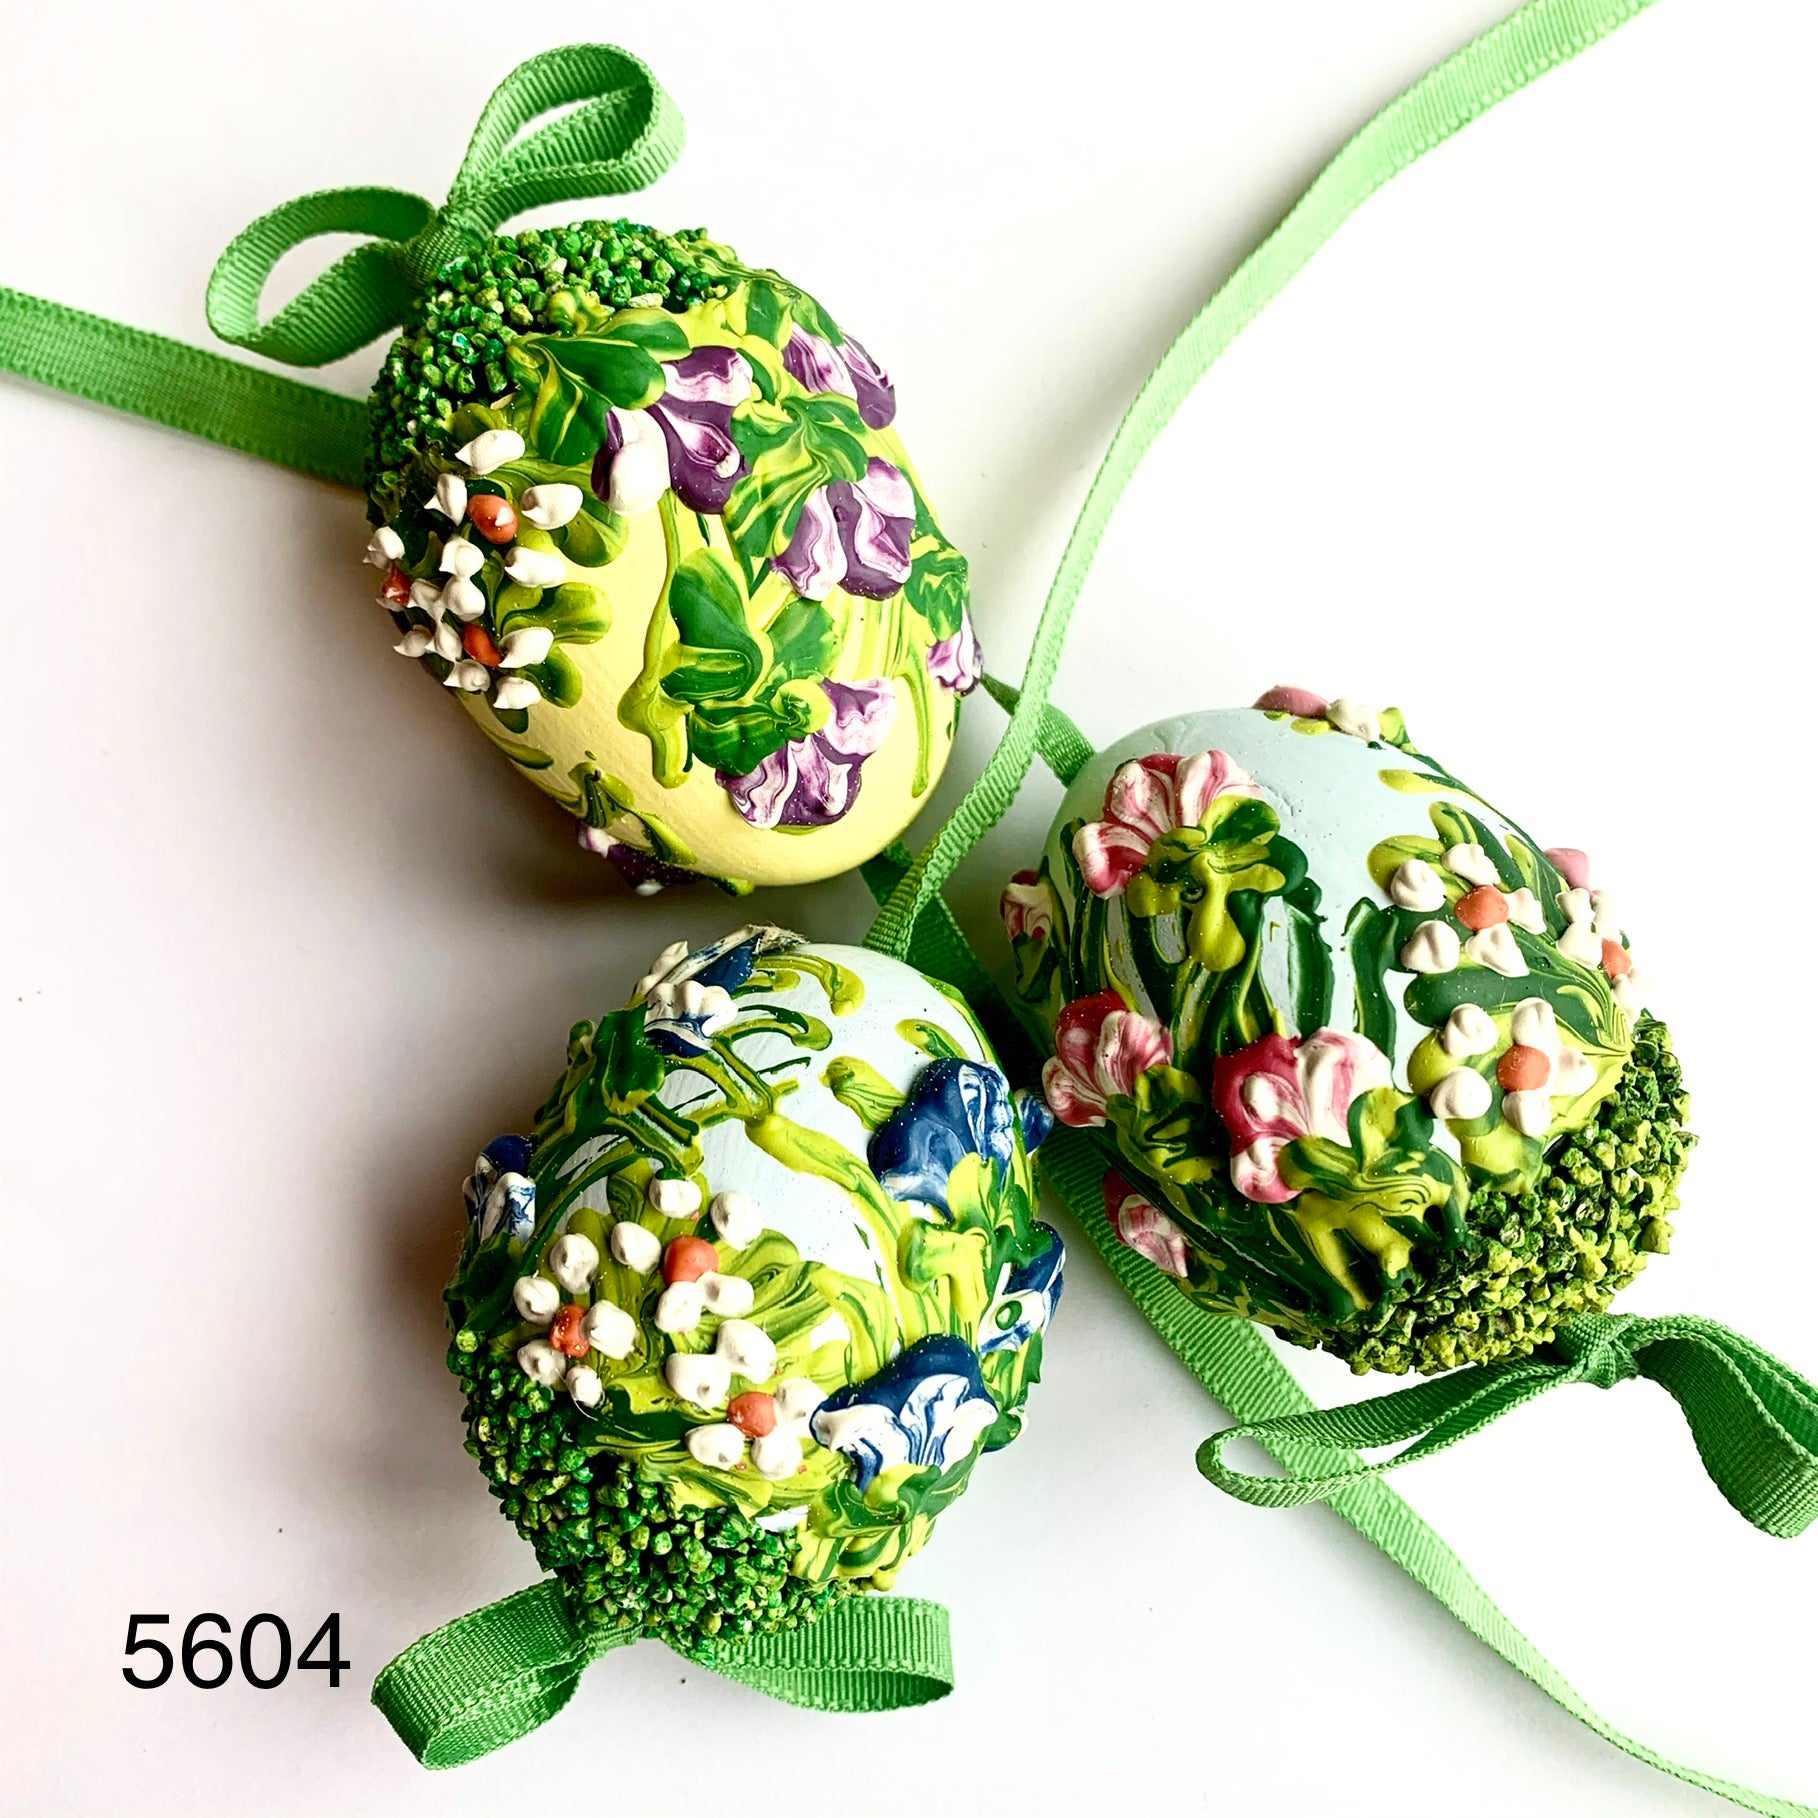 Peter's Hand Painted Egg from Austria 5604